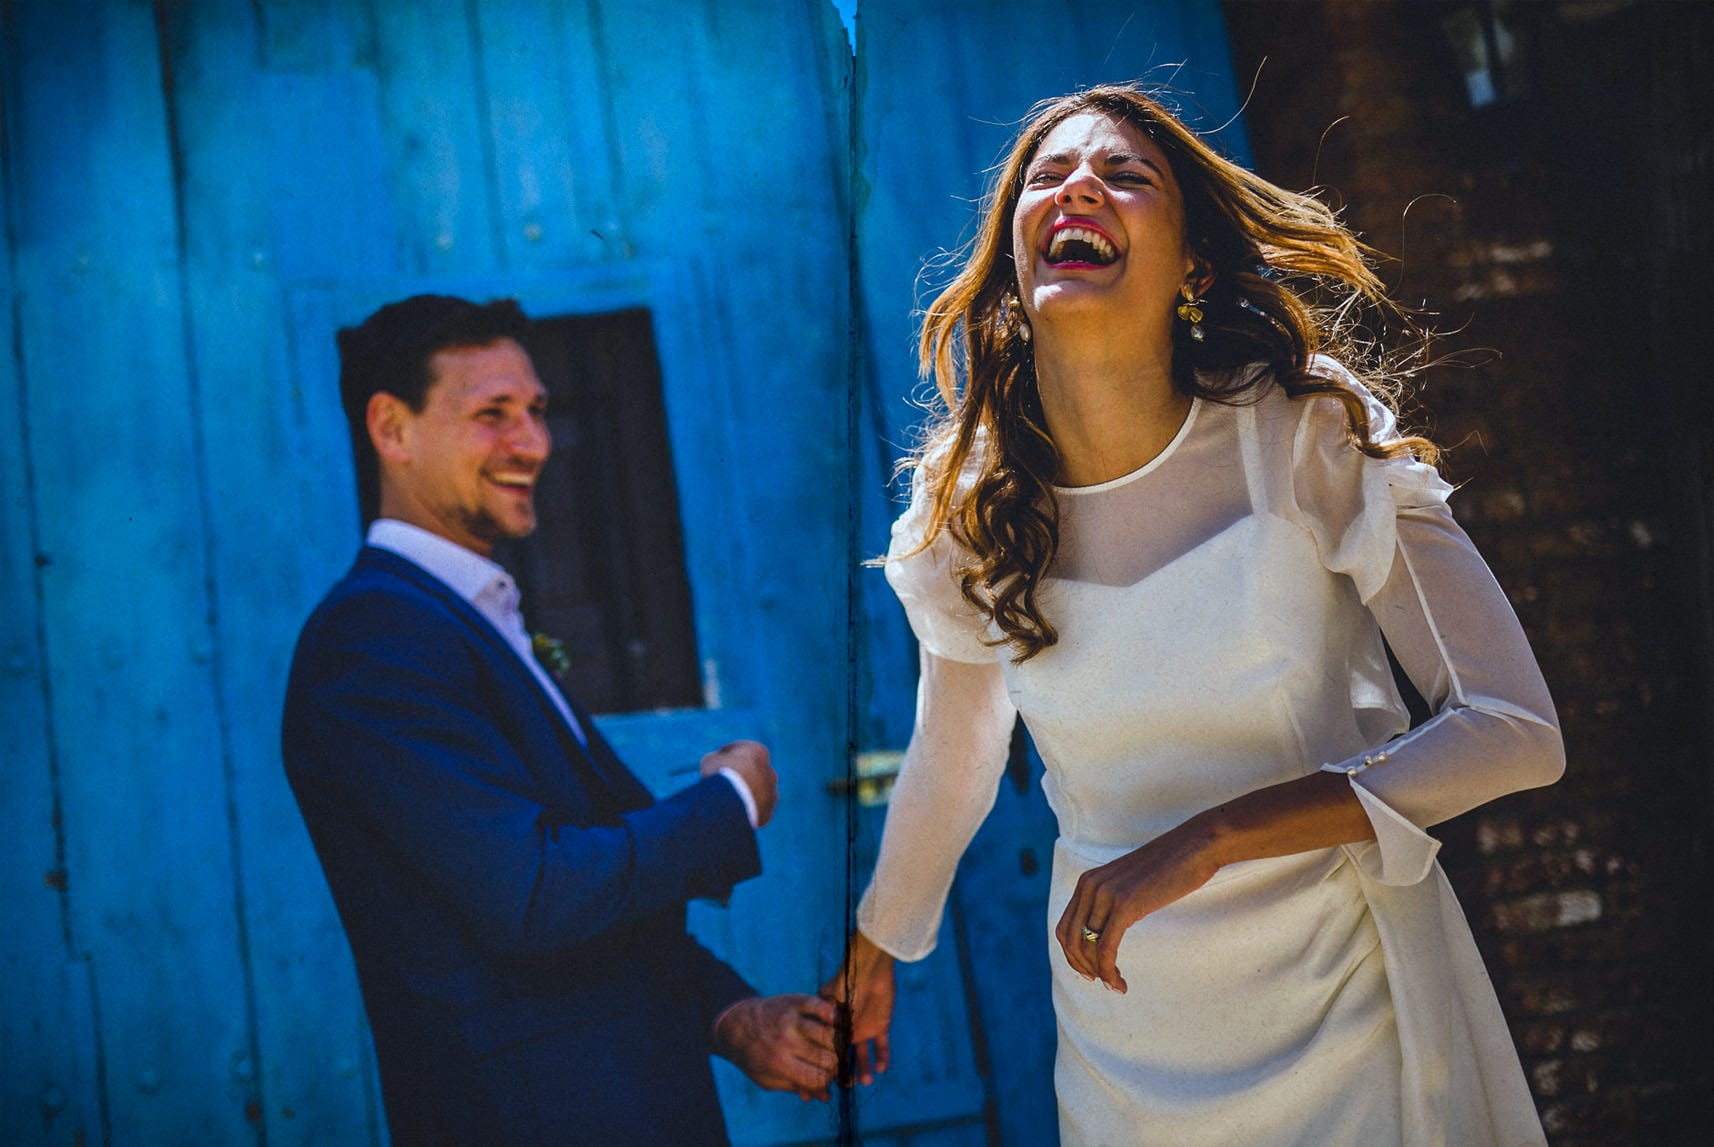 Beatiful bride and groom laughing out loud